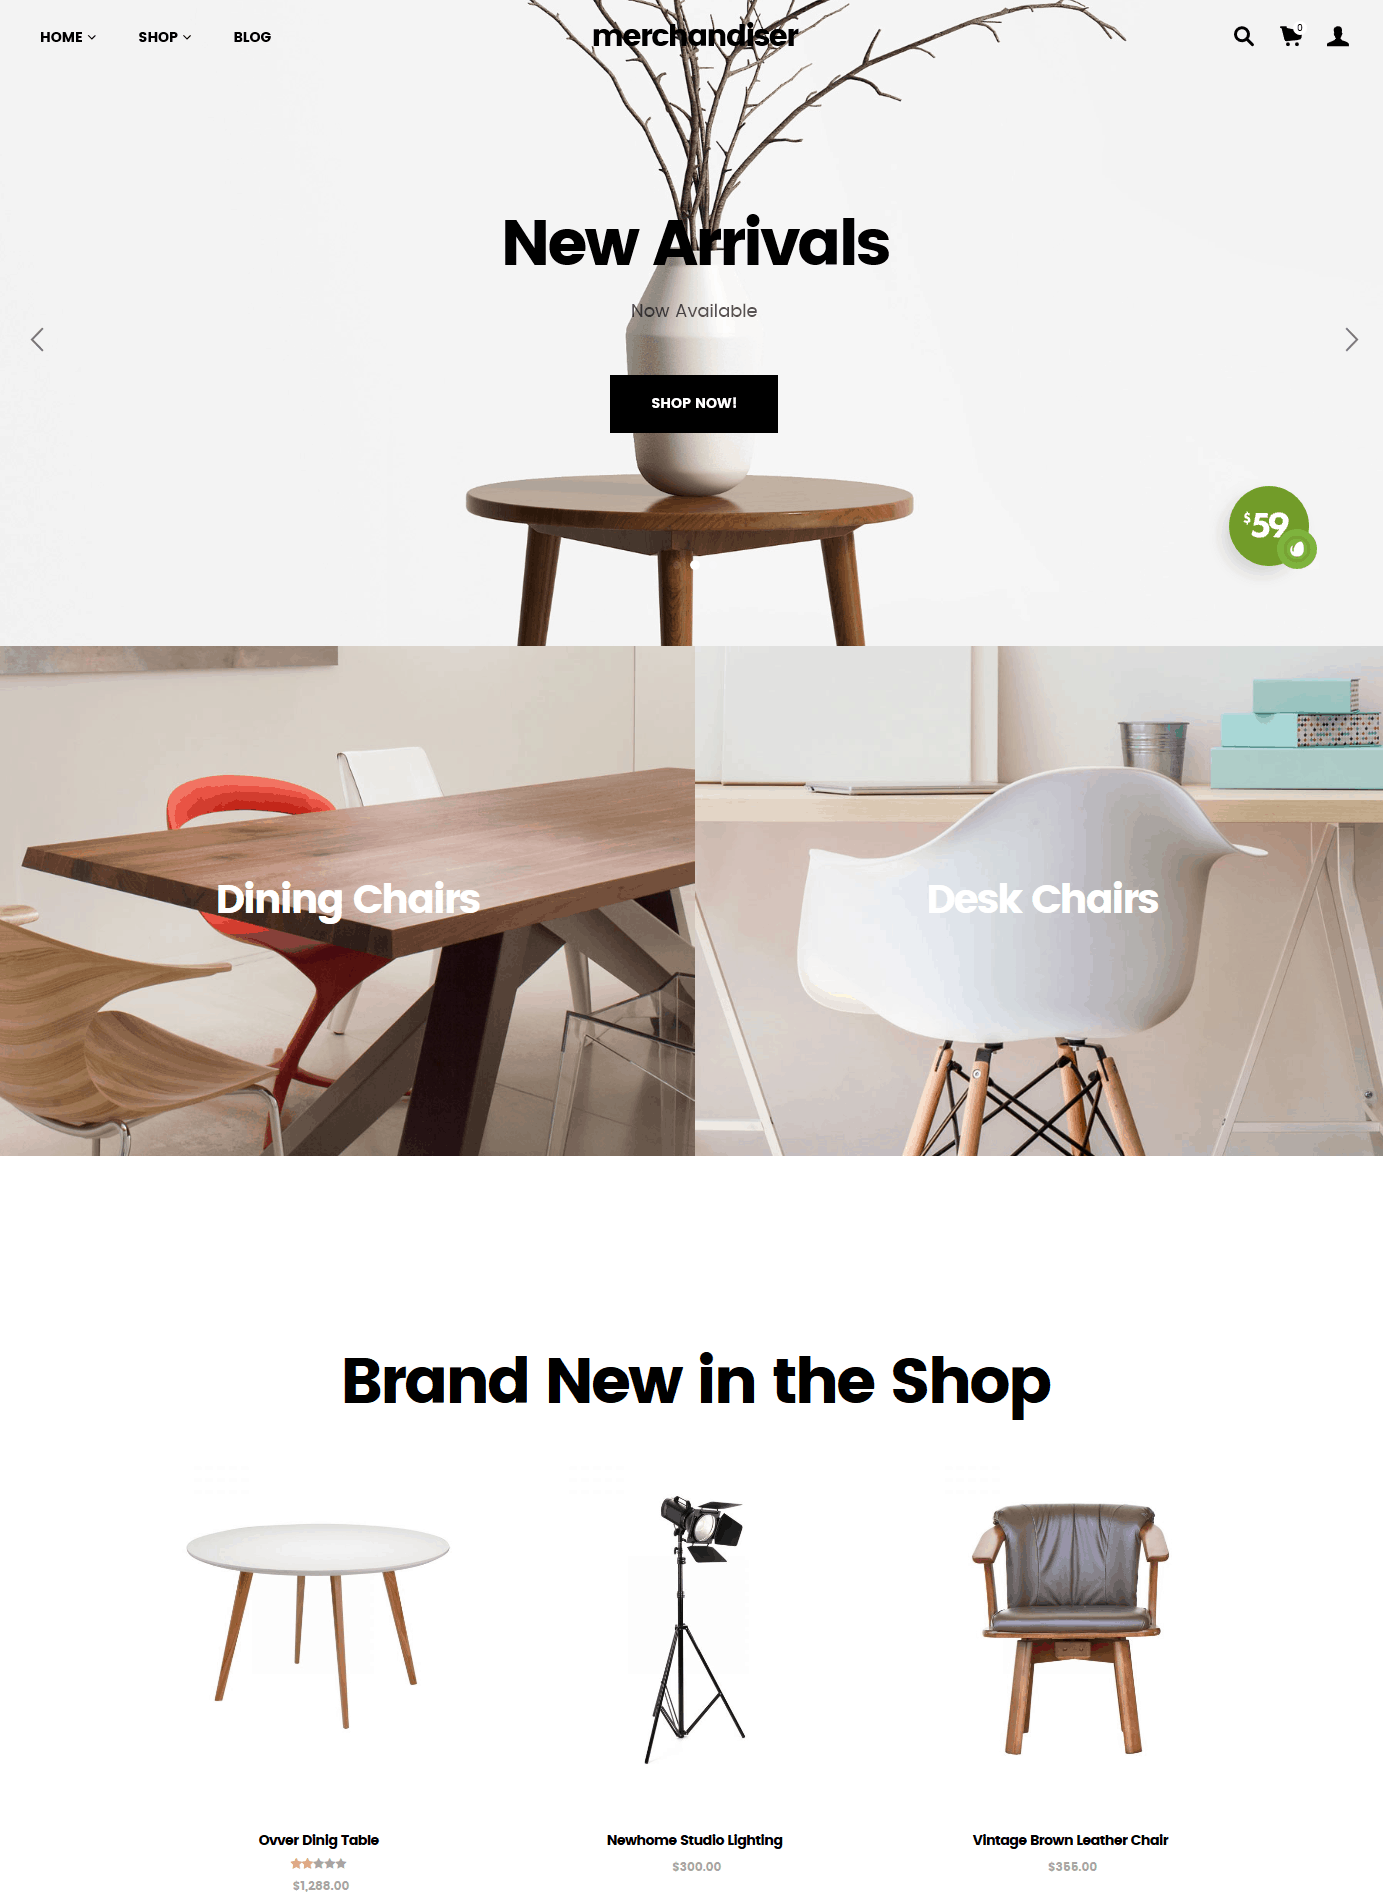 merchandiser easy and clean ecommerce theme